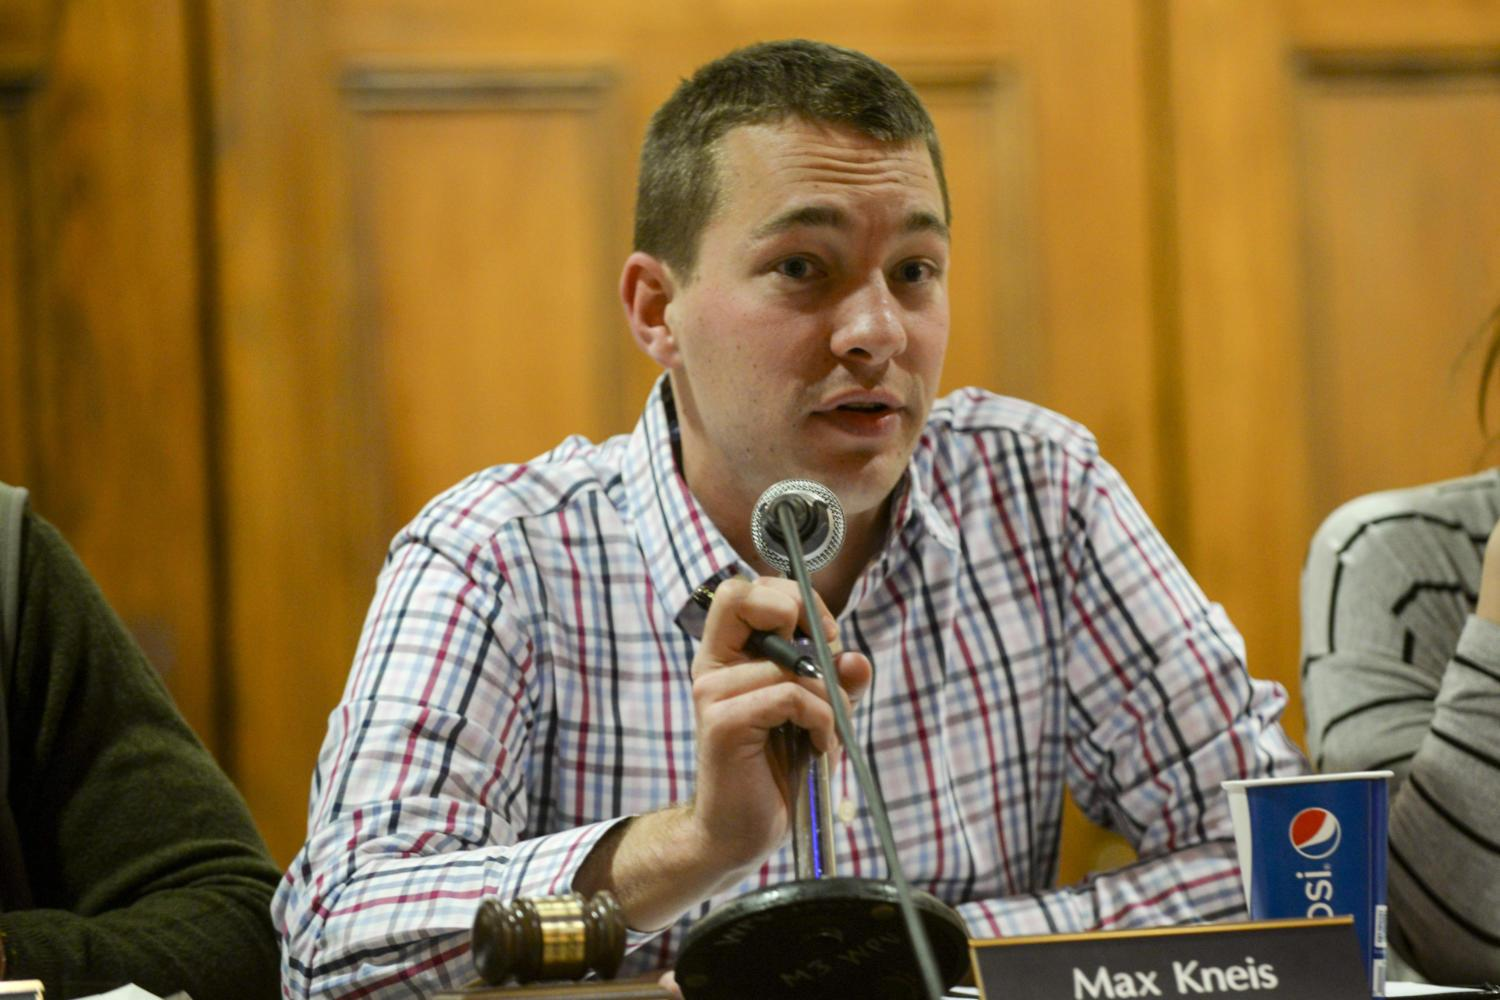 """SGB president Max Kneis said it took two years to finalizing the new """"Rave guardian app"""" at Tuesday's meeting. (Photo by Aaron Schoen   Staff Photographer)"""